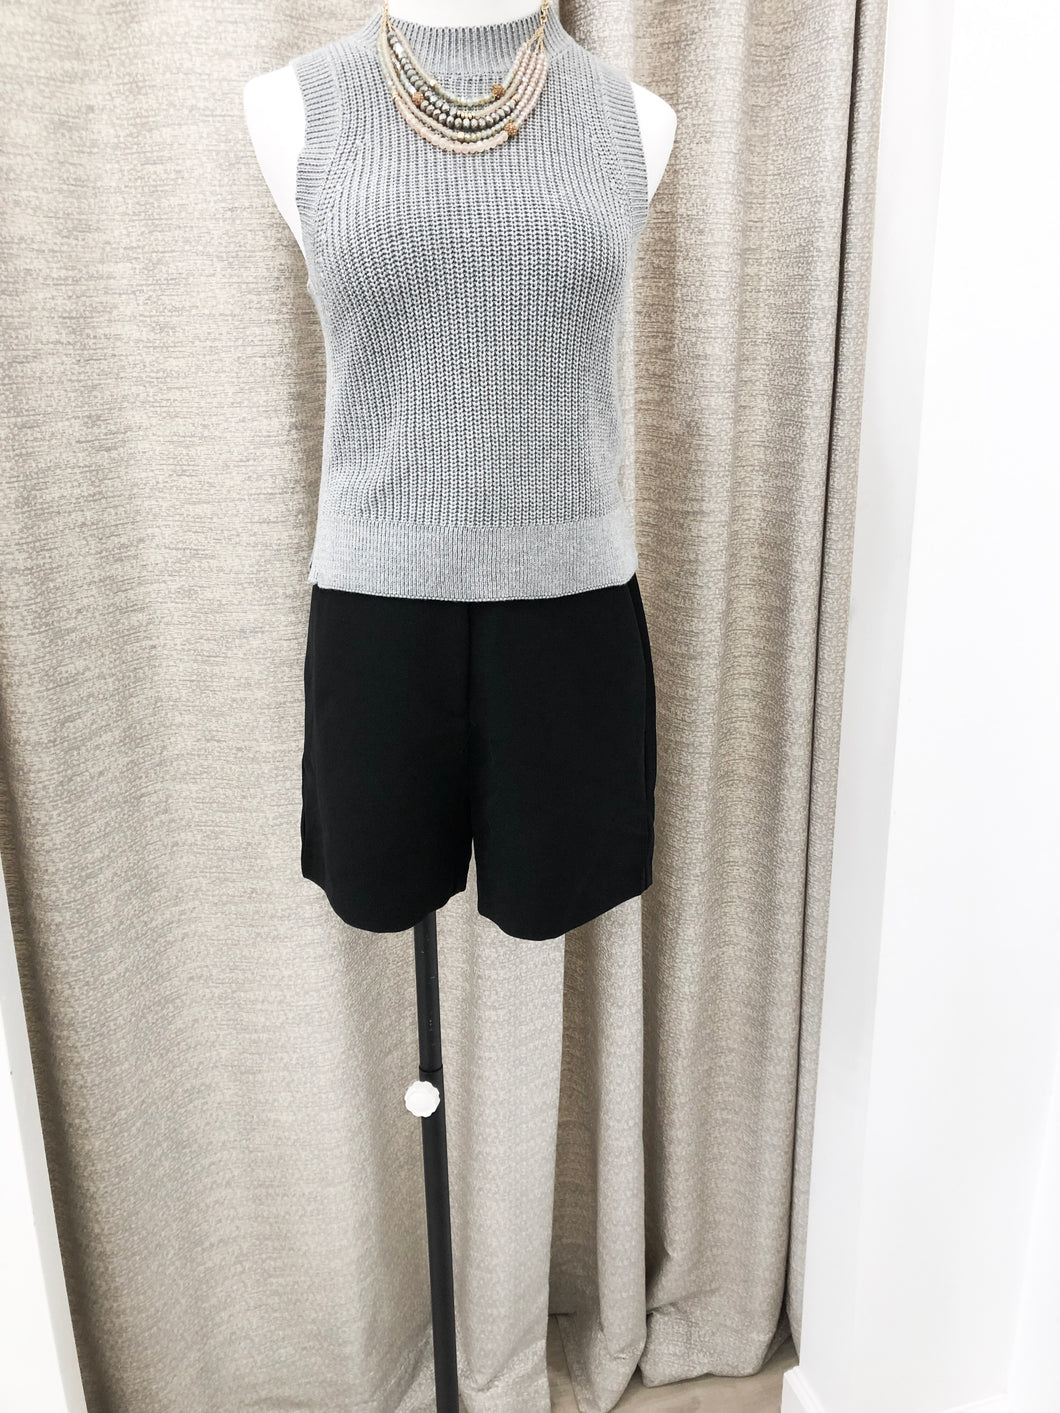 Louie Shorts in Black - FINAL SALE